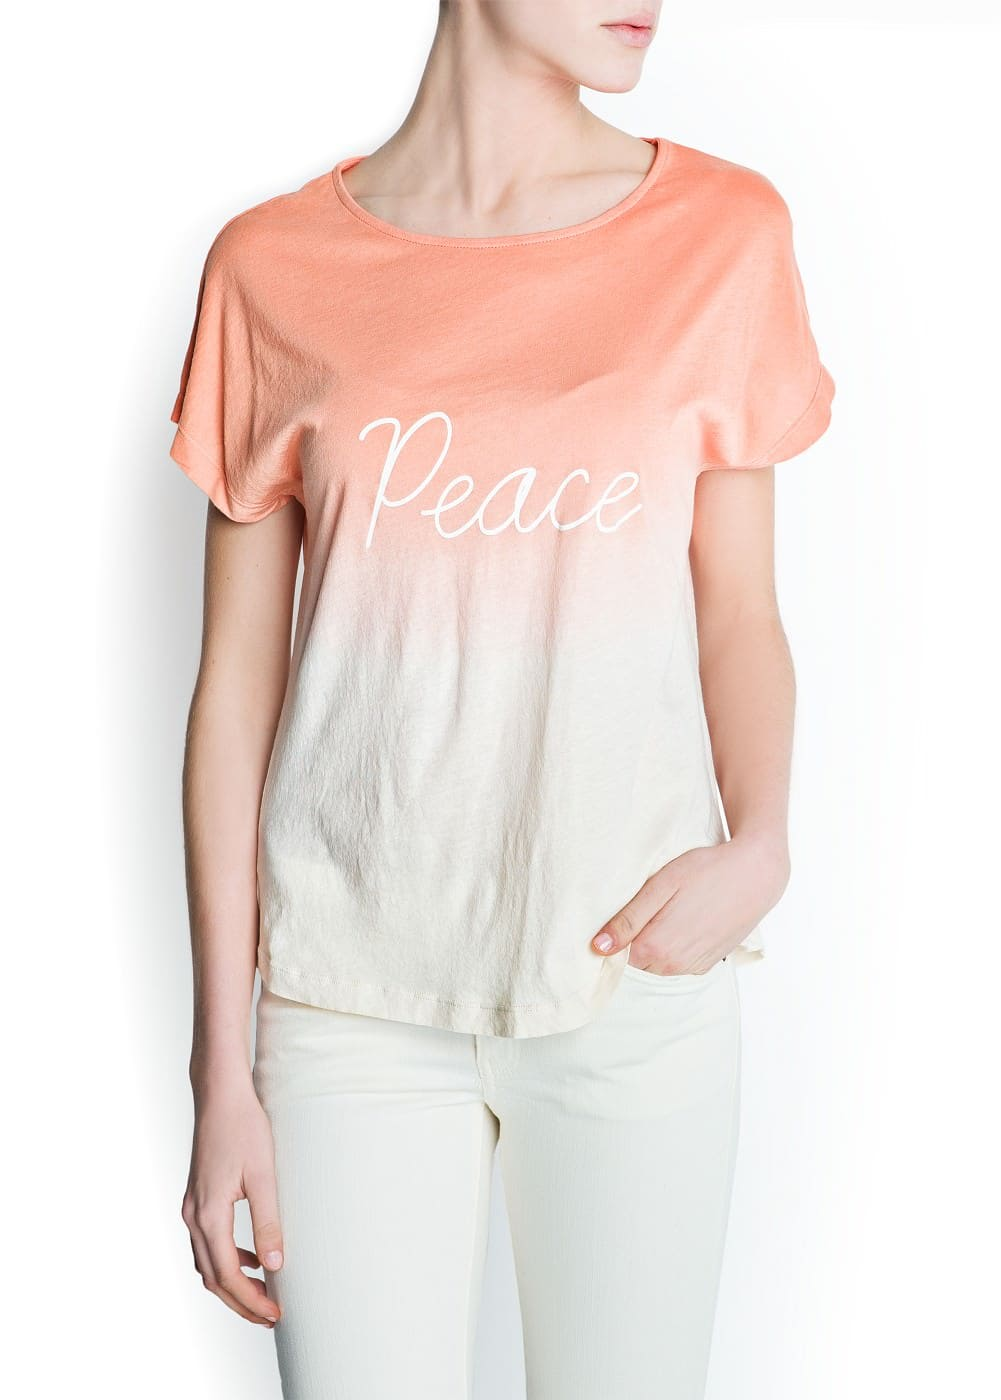 Message ombré t-shirt